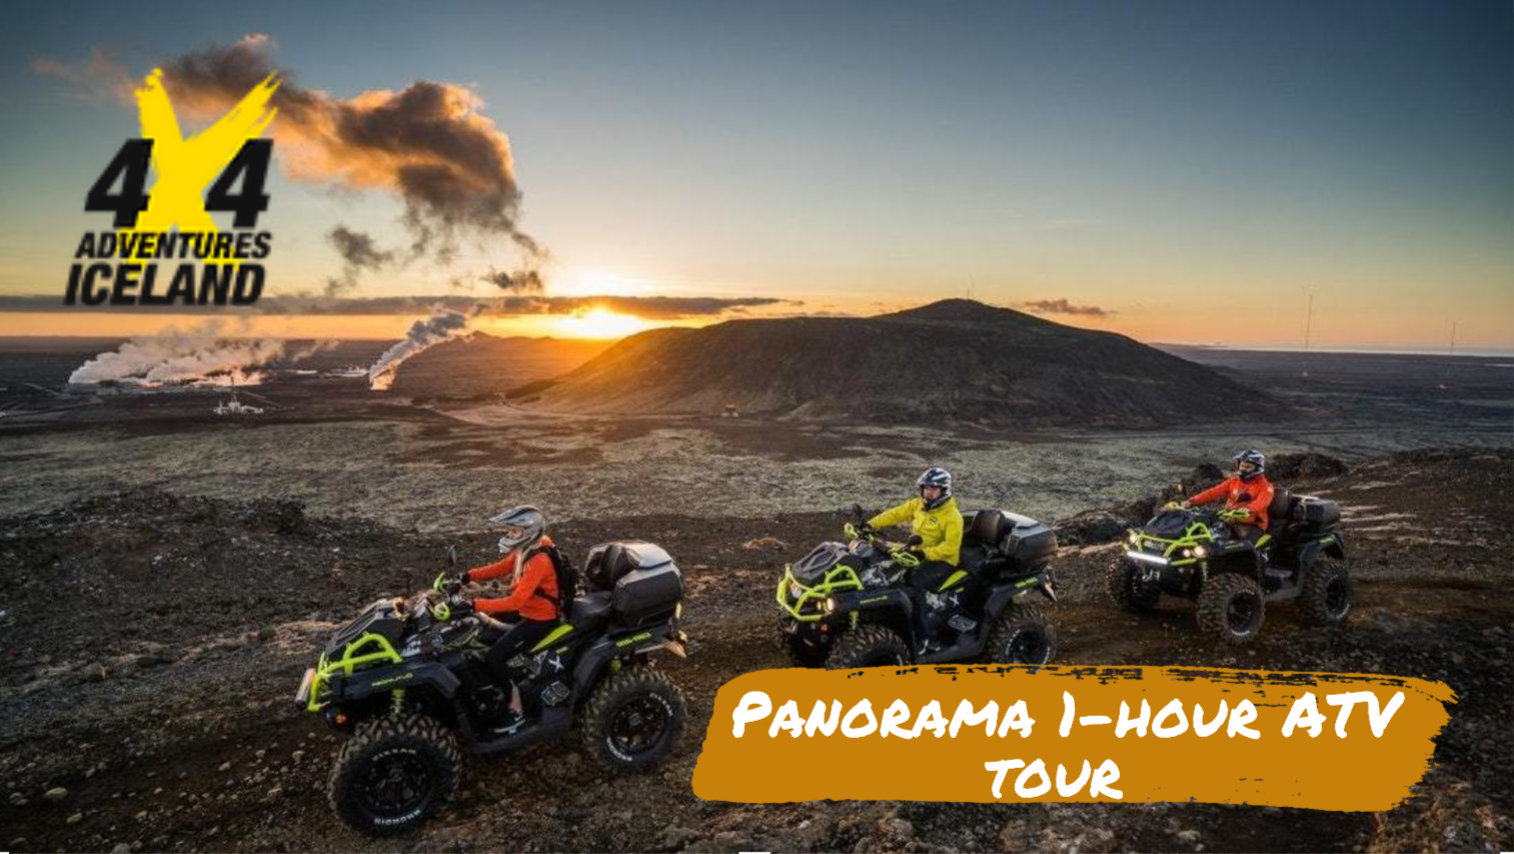 Panorama 1-hour ATV tour